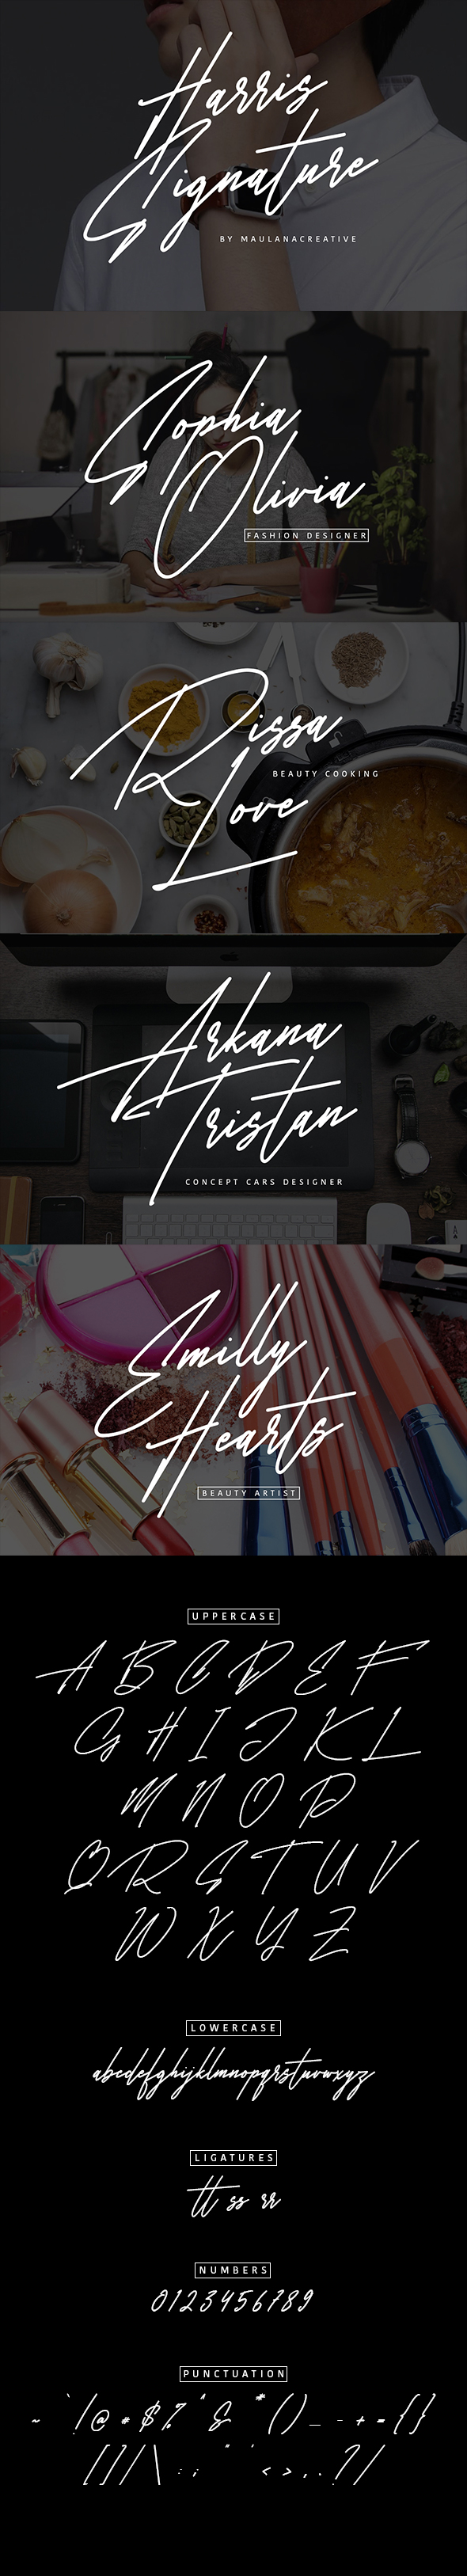 GraphicRiver Harris Signature Typeface 21117577